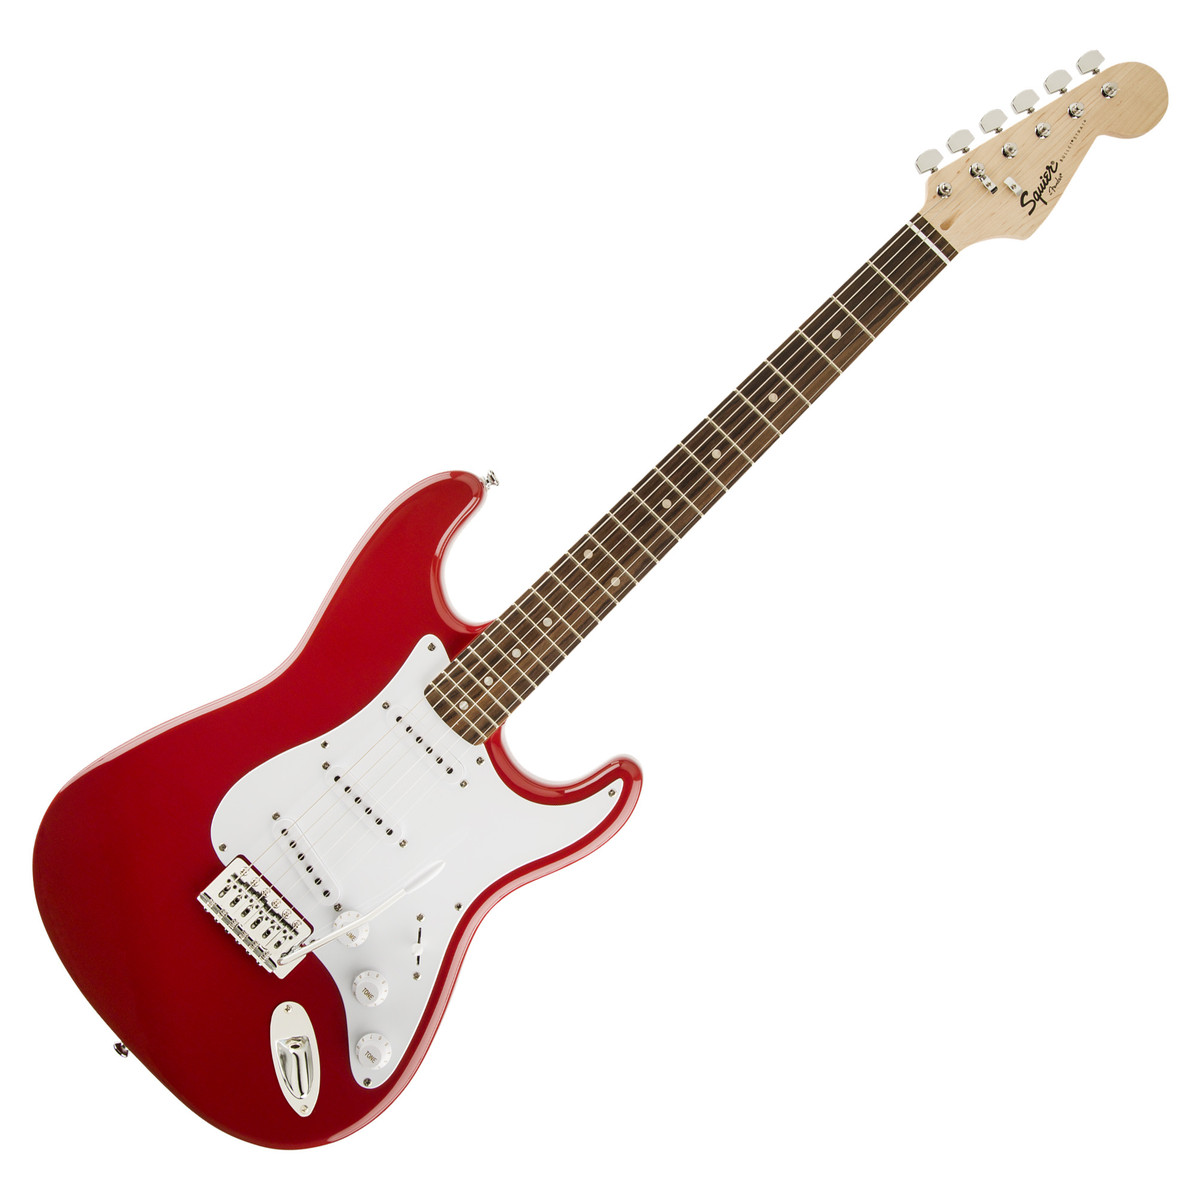 squier by fender bullet stratocaster fiesta red at. Black Bedroom Furniture Sets. Home Design Ideas